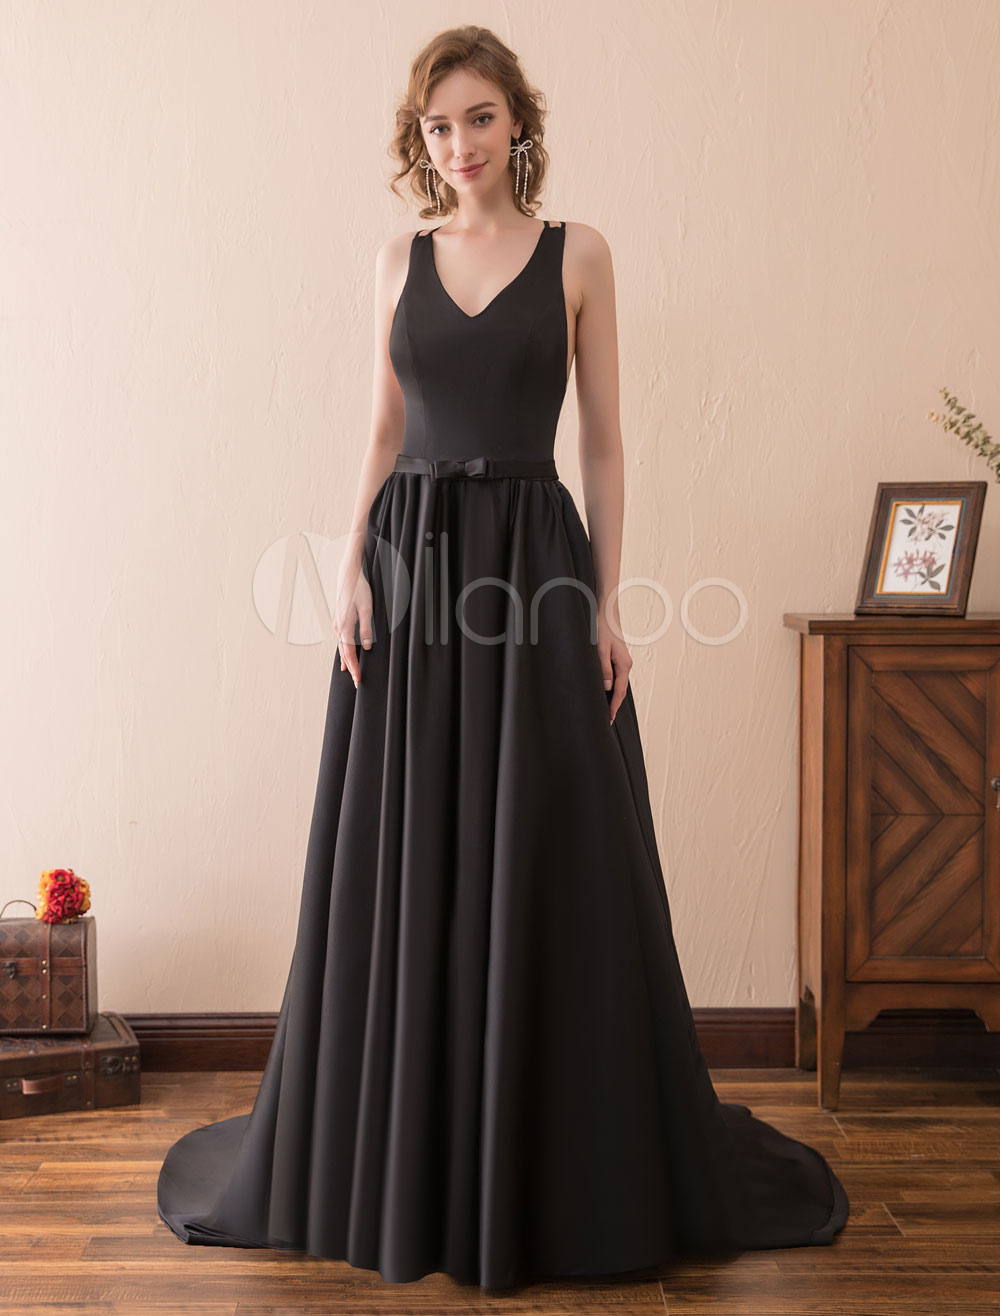 Buy Black Prom Dresses Long Satin Evening Gown Back Cross V Neck Bow Sash Formal Occasion Dress With Train for $100.79 in Milanoo store